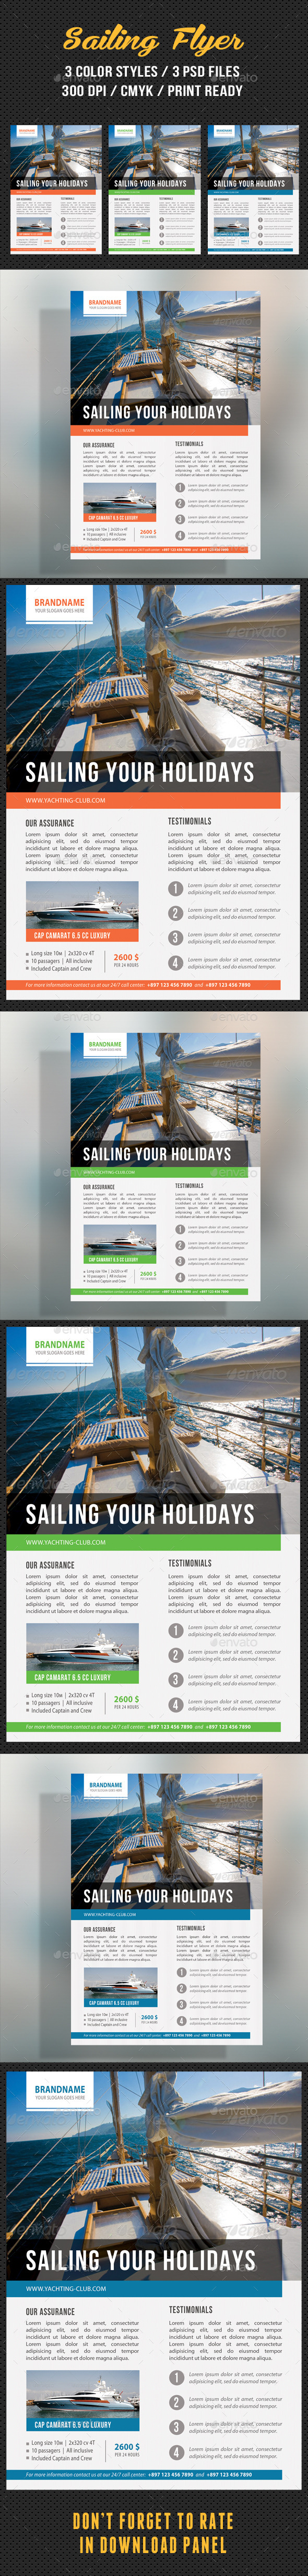 GraphicRiver Sailing Yacht Travel Flyer 02 8896728